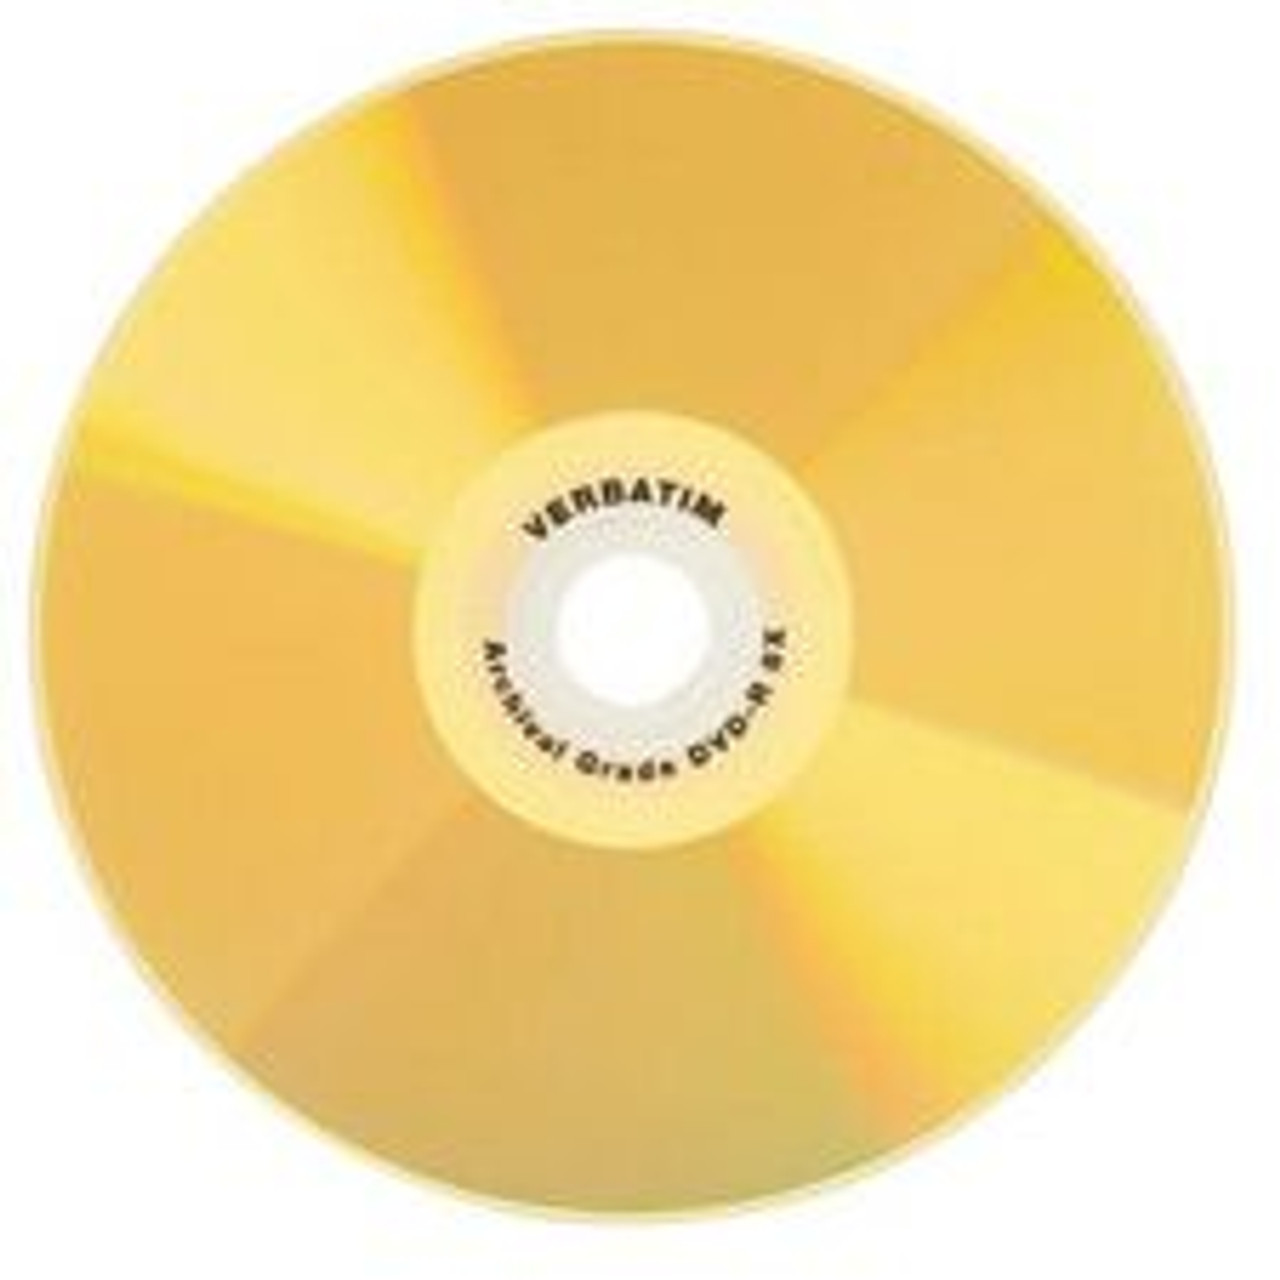 Image for Verbatim DVD-R 4.7GB 8x Gold Archival Grade 50 Pack CX Computer Superstore